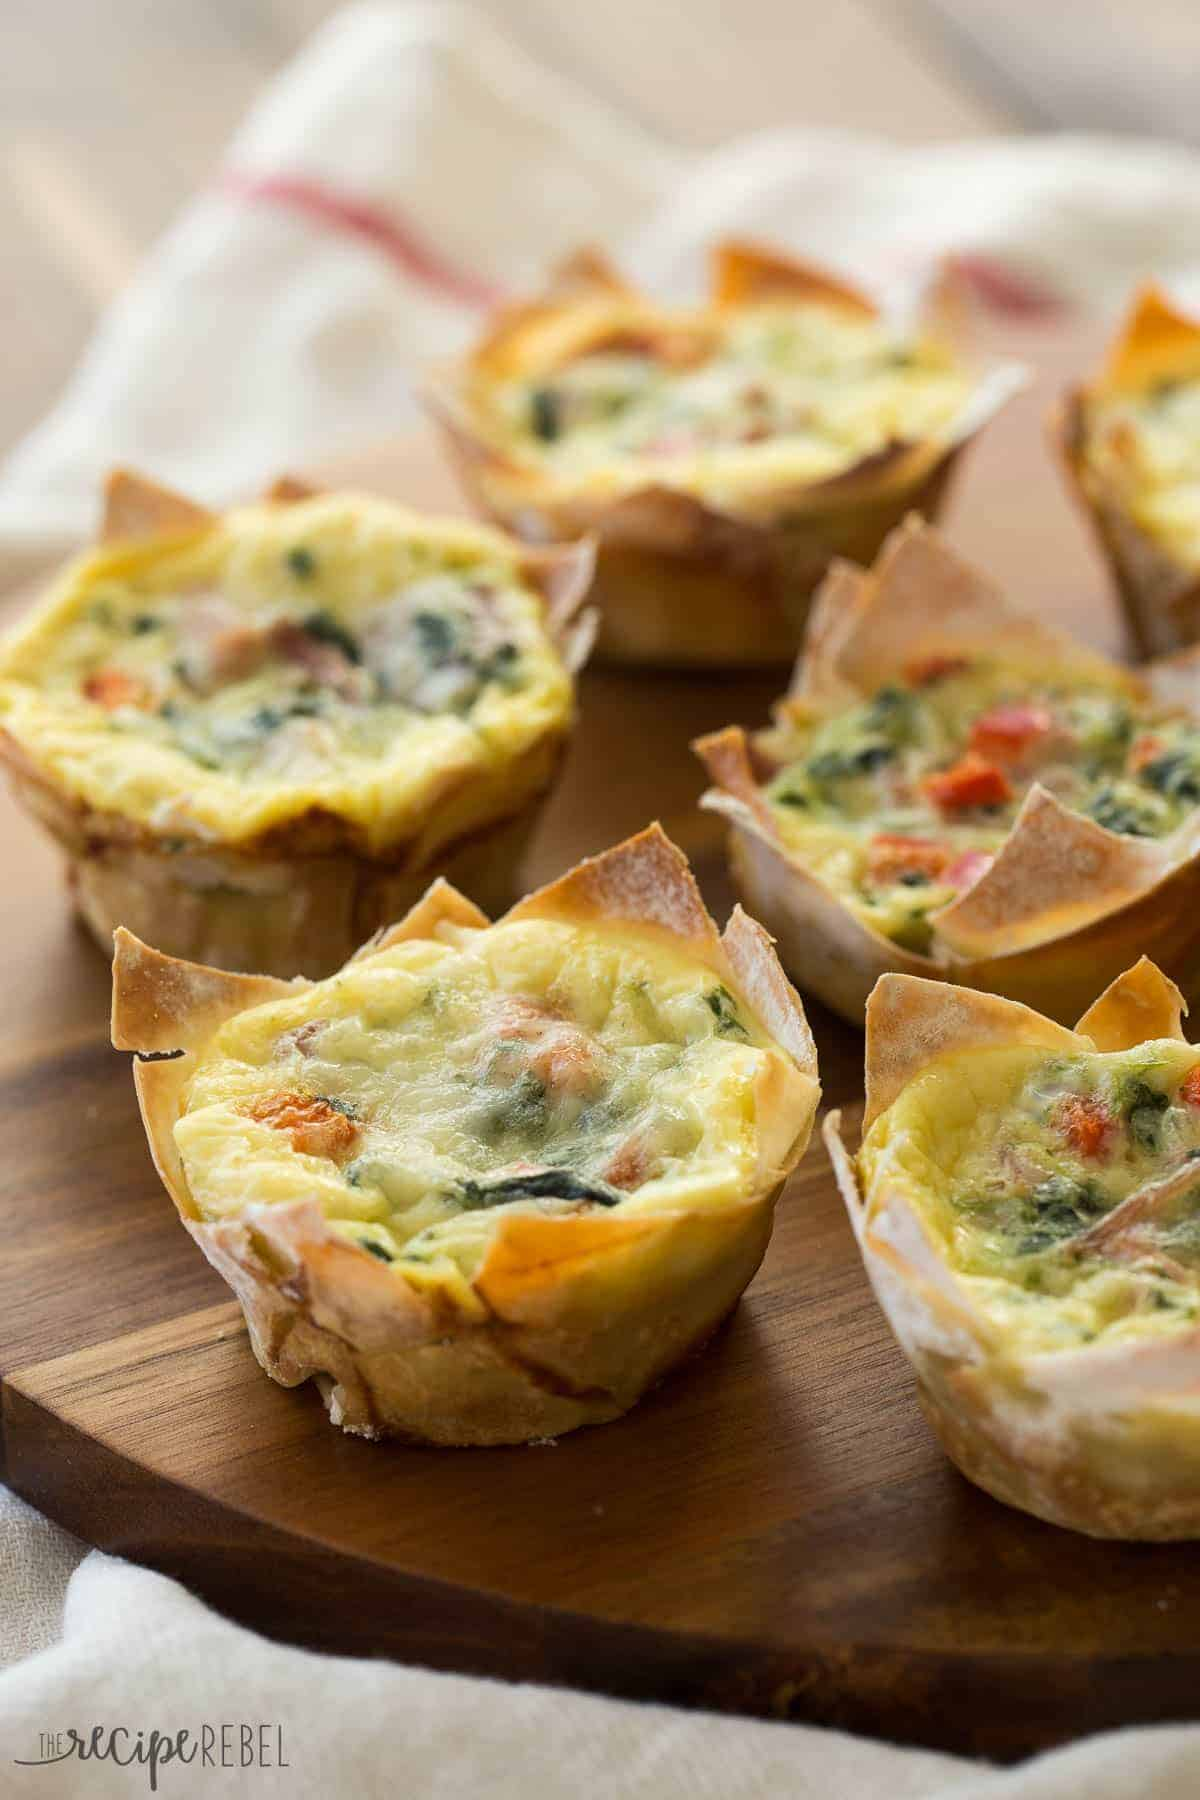 mini wonton quiche with spinach and peppers on a wooden board